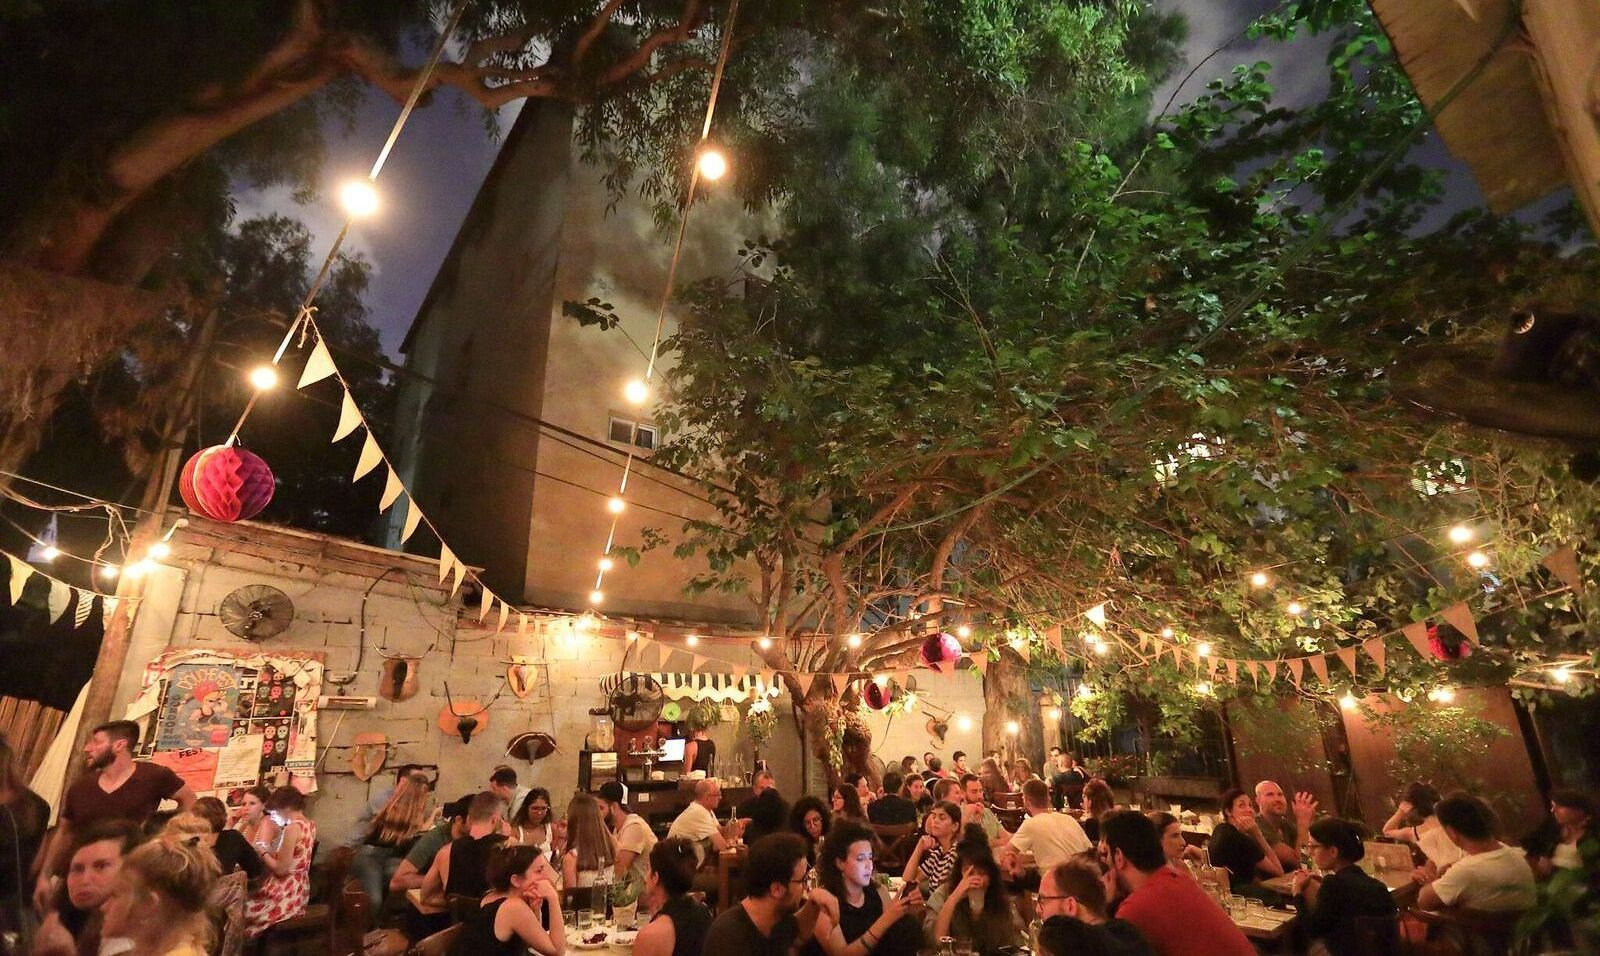 10 Tel Aviv bars you absolutely need to go to for a chill night out